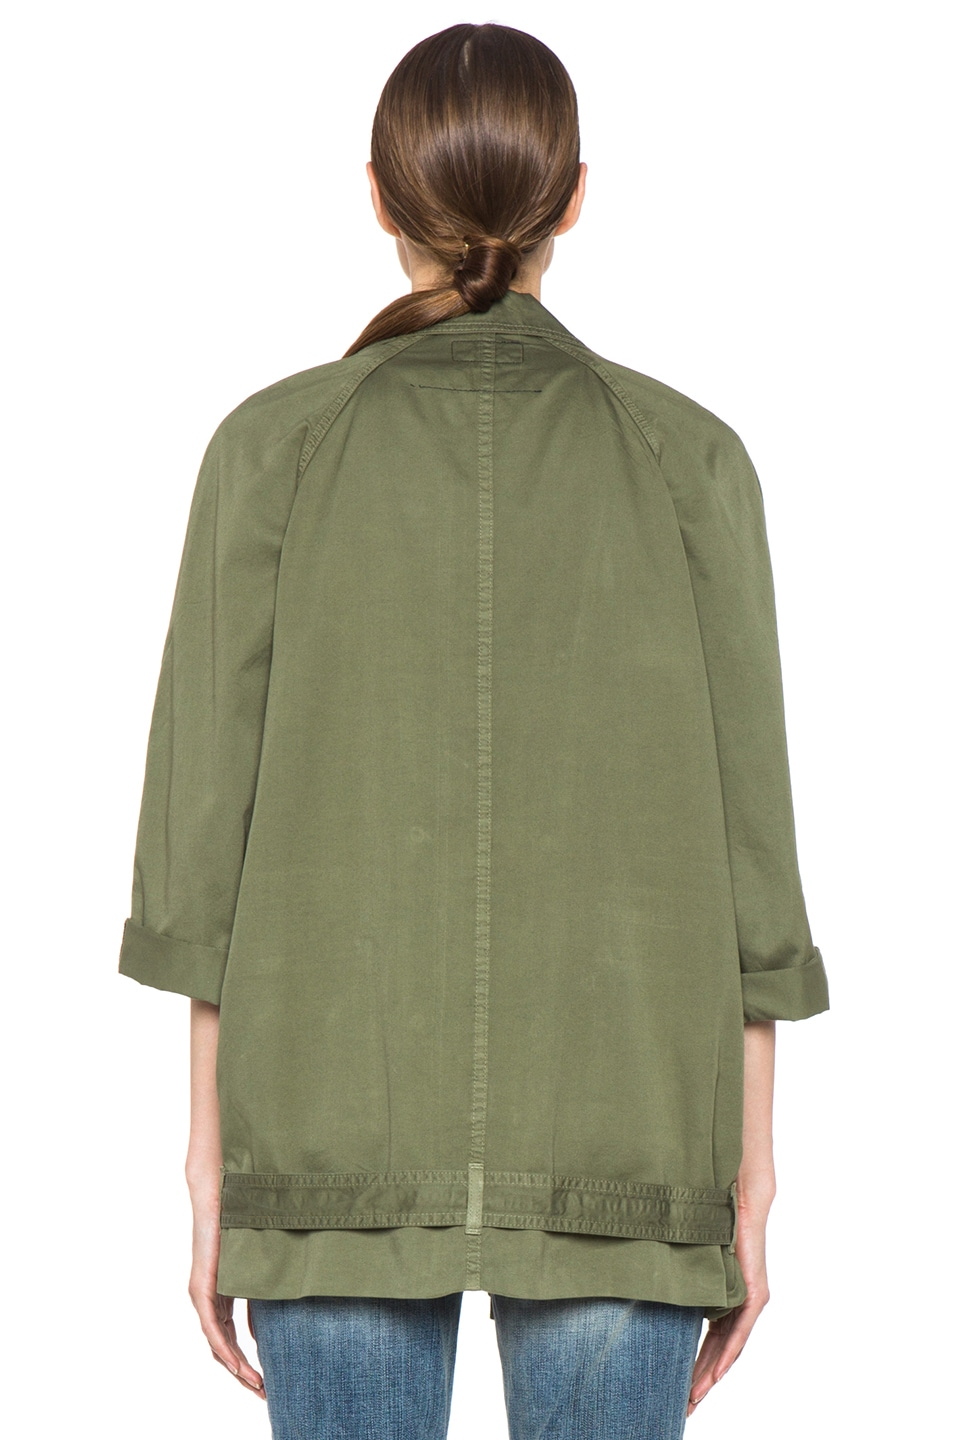 Image 5 of Current/Elliott The Infantry Cotton Jacket in Army